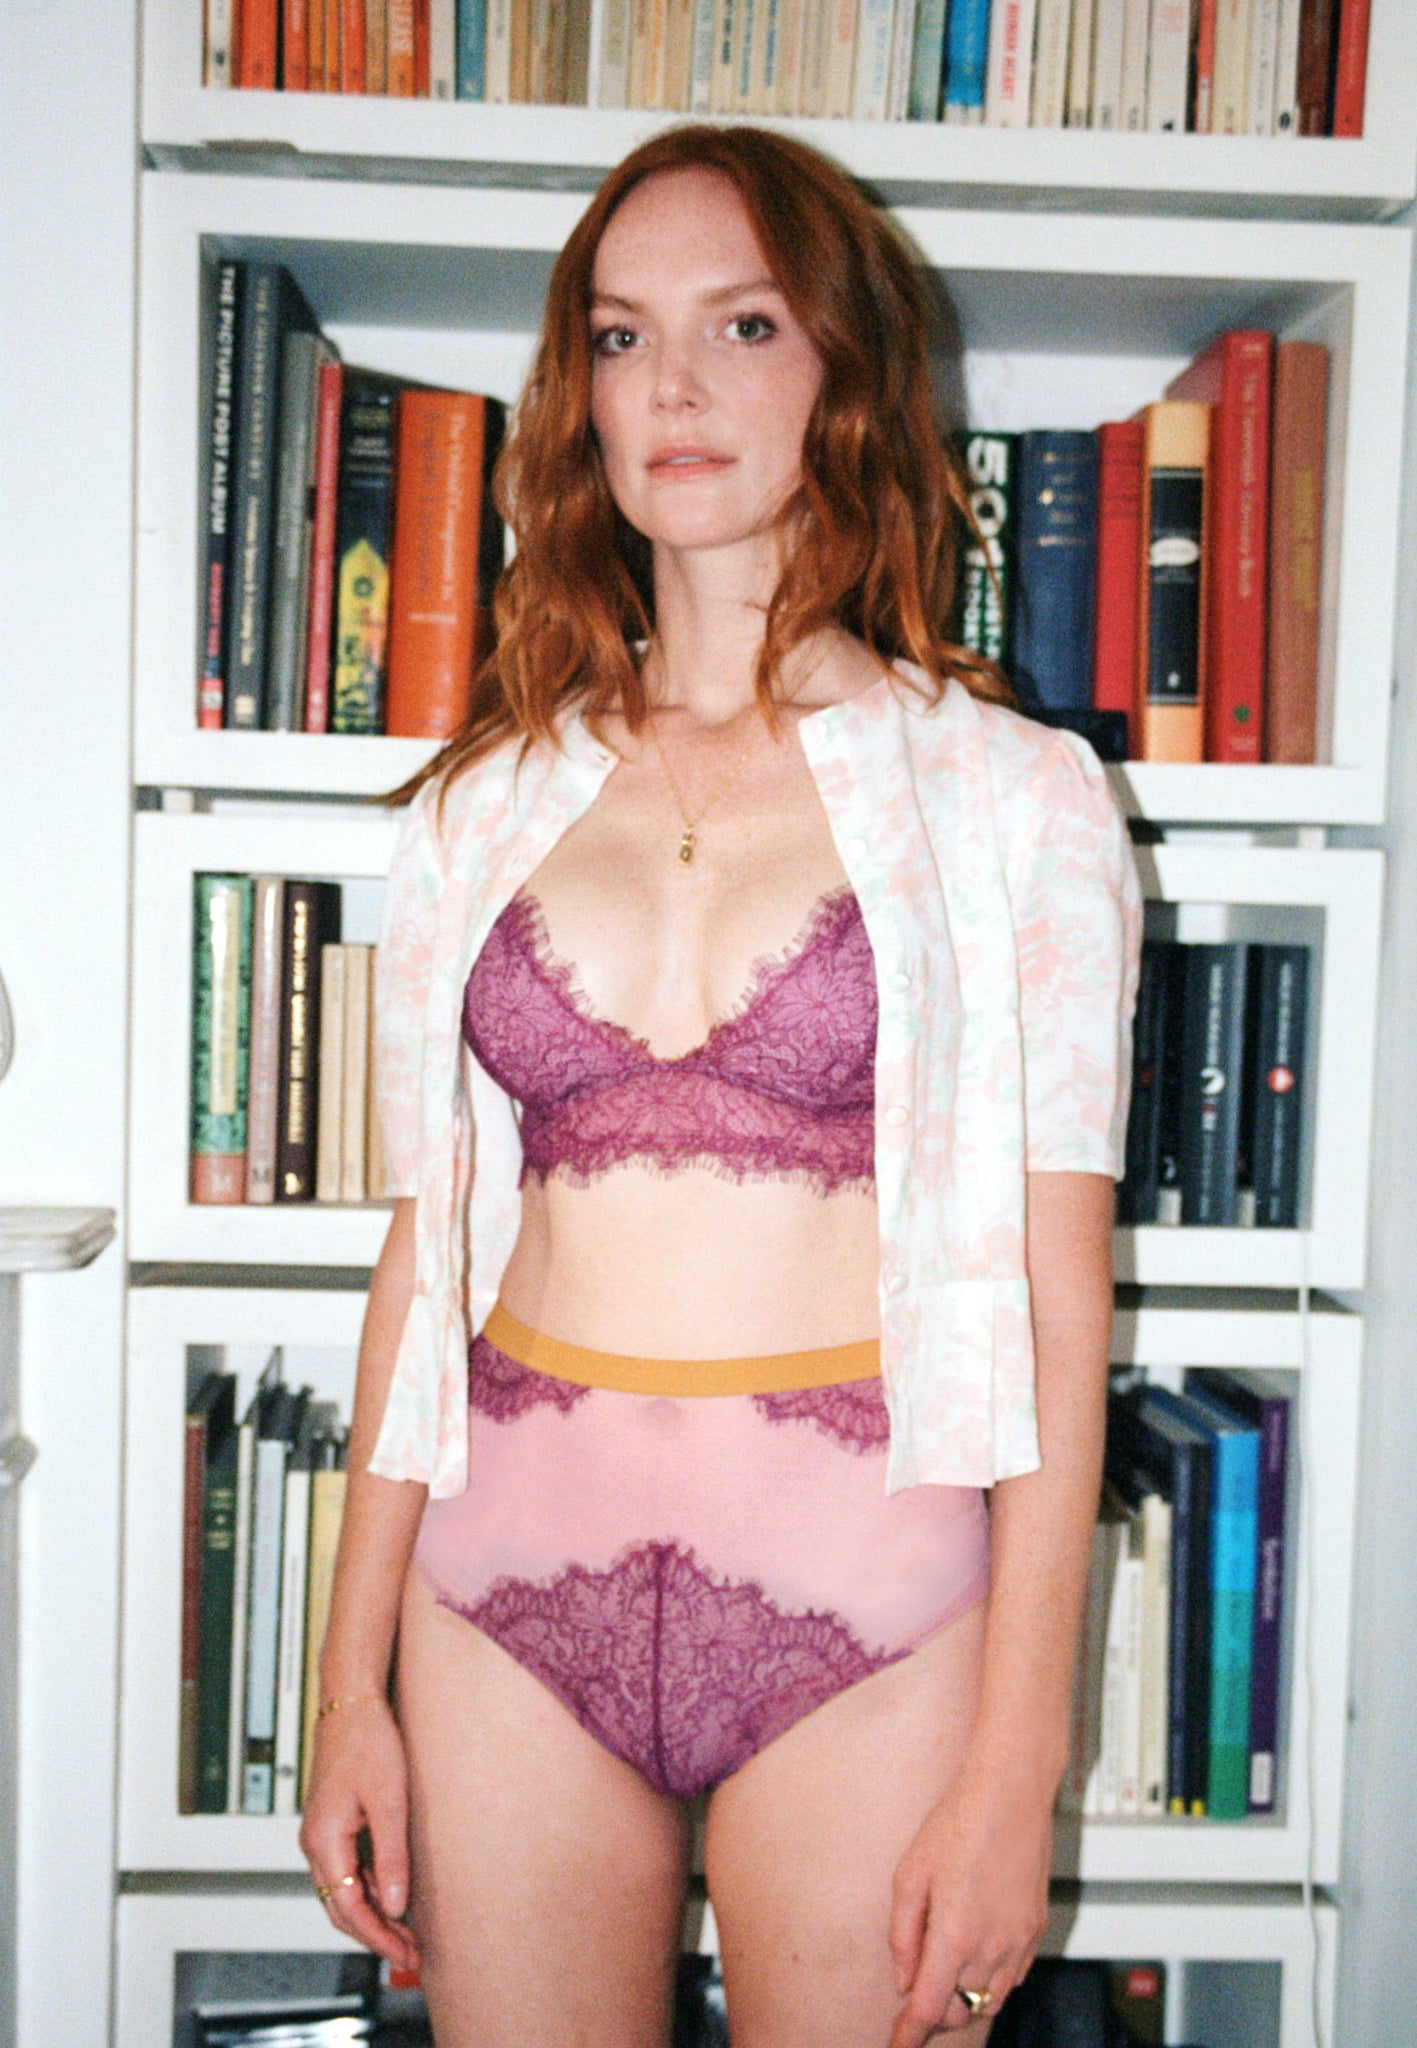 Stories-In the spotlight: Meghan - Dora Larsen | Colourful Lingerie